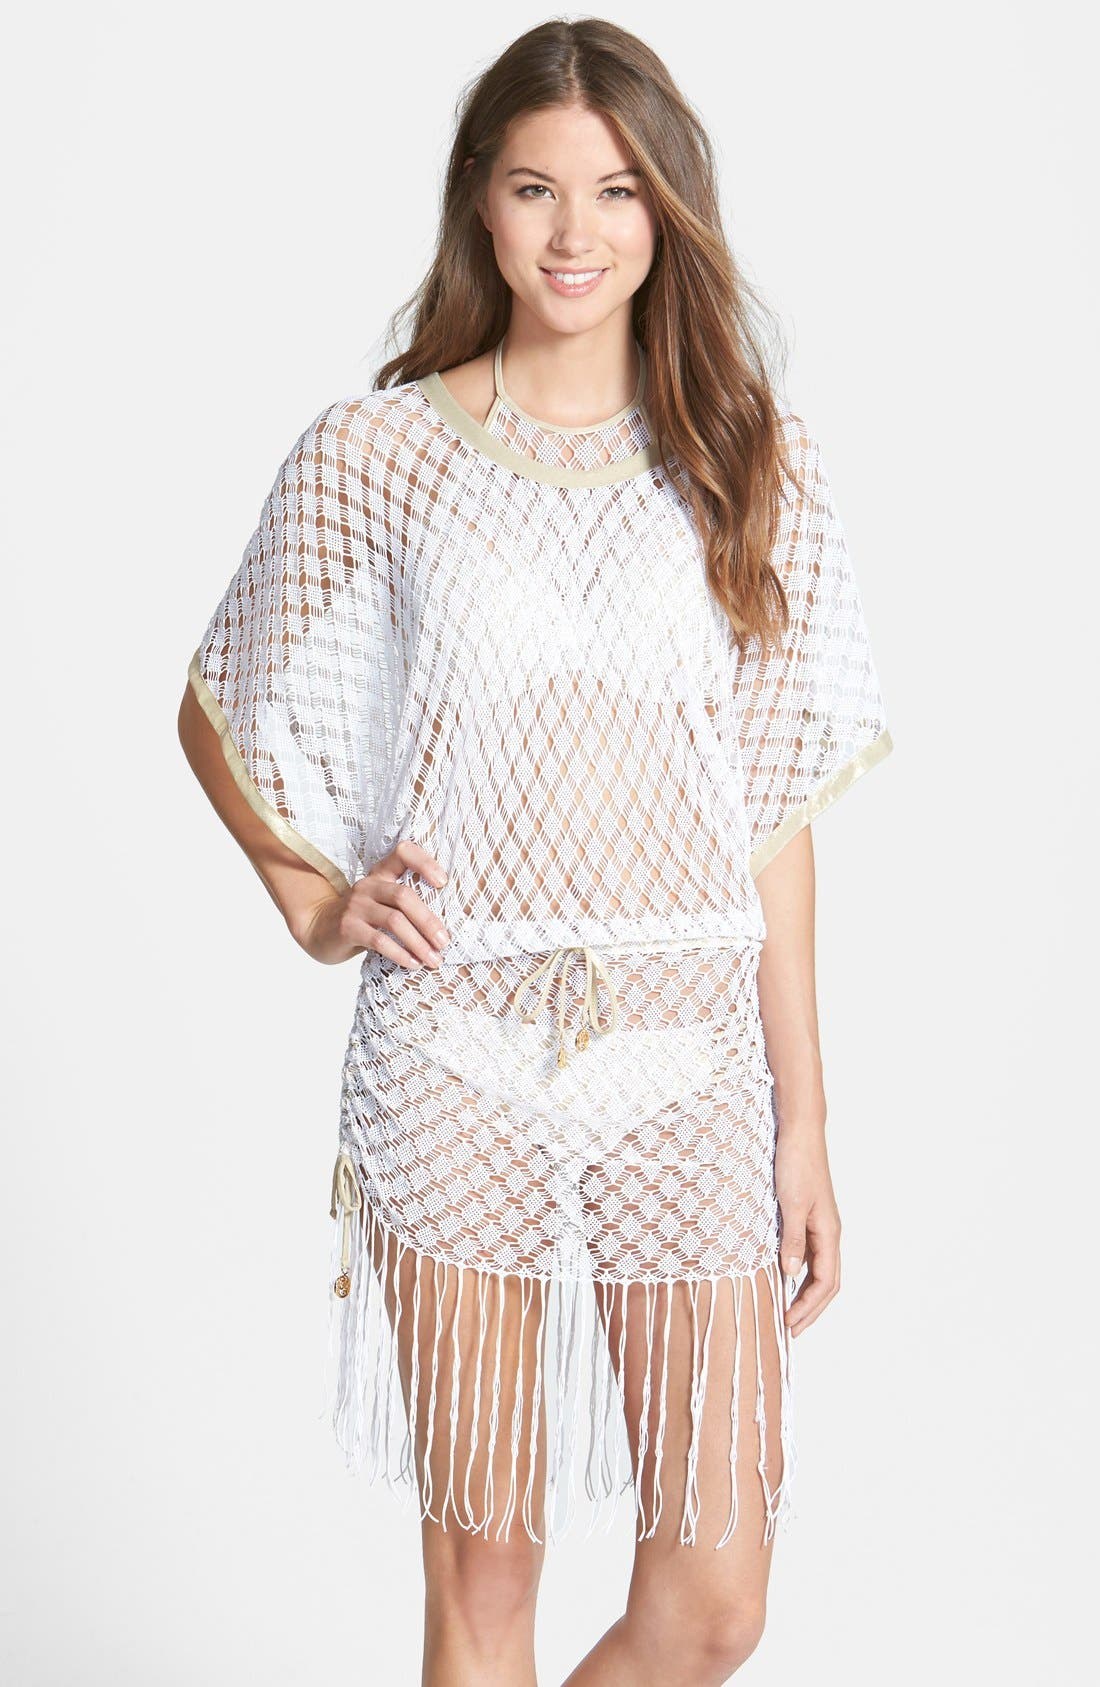 Alternate Image 1 Selected - Luli Fama 'South Beach' Crochet Cover-Up Dress